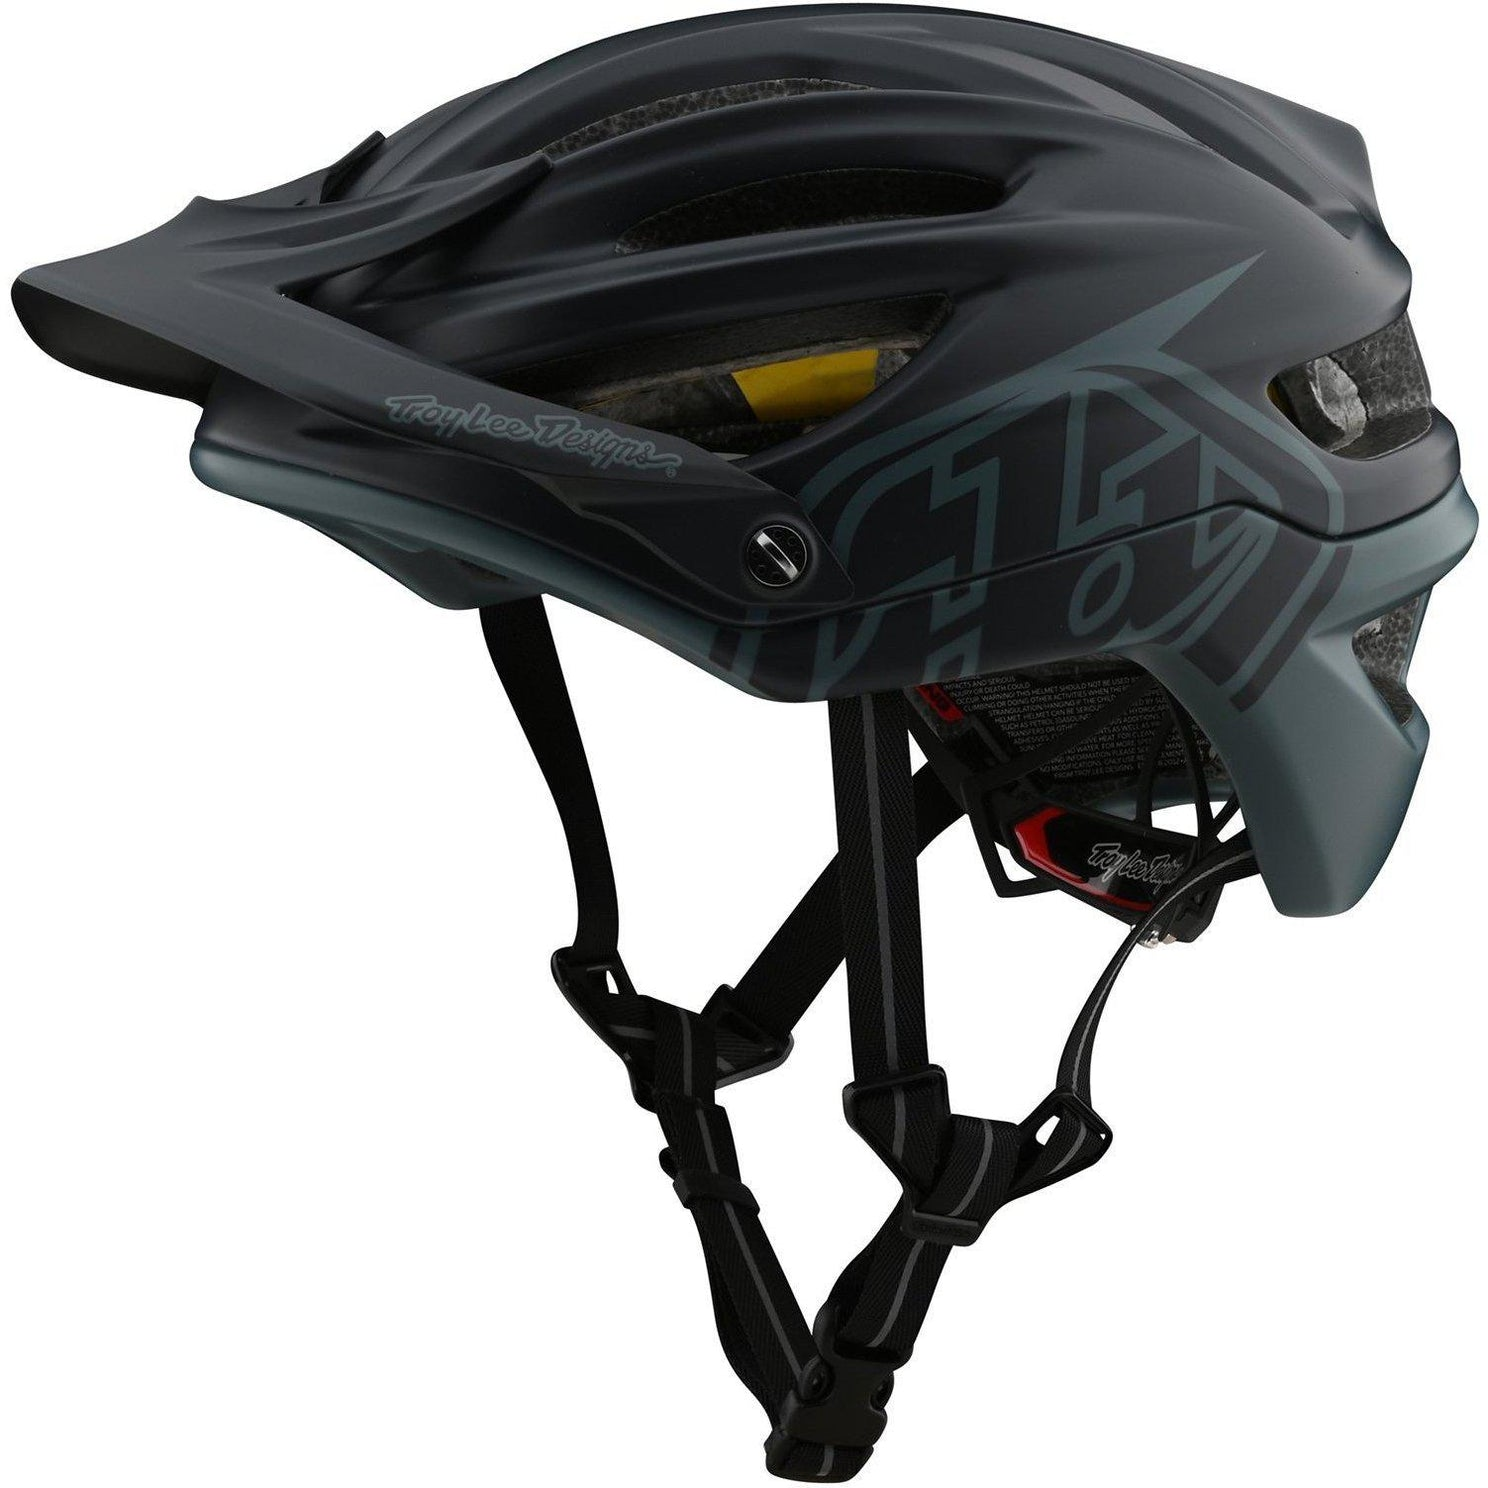 Troy Lee Designs-Troy Lee Designs A2 MIPS Helmet-Decoy - Gray/Green-M/L-TLD191485033-saddleback-elite-performance-cycling